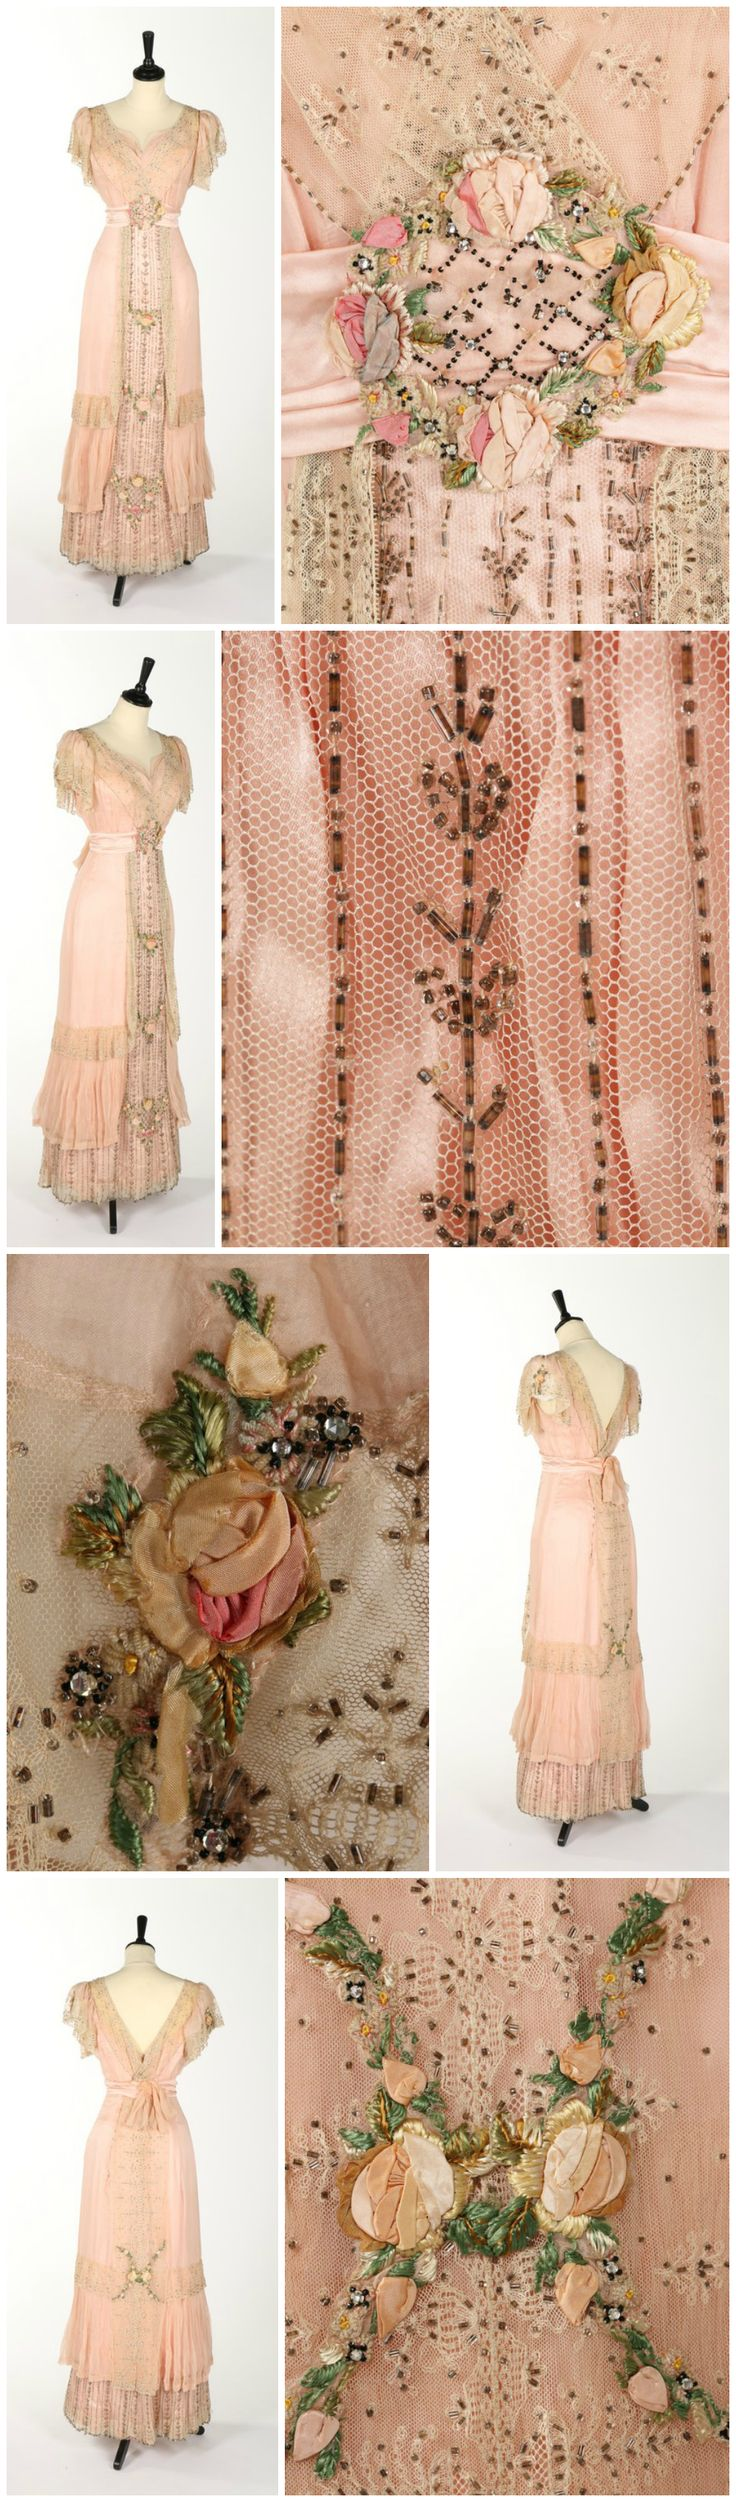 A Weeks of Paris pink chiffon, beaded and ribbon-worked evening dress, circa 1910. Kerry Taylor Auctions. CLICK THROUGH FOR BIGGER IMAGES.